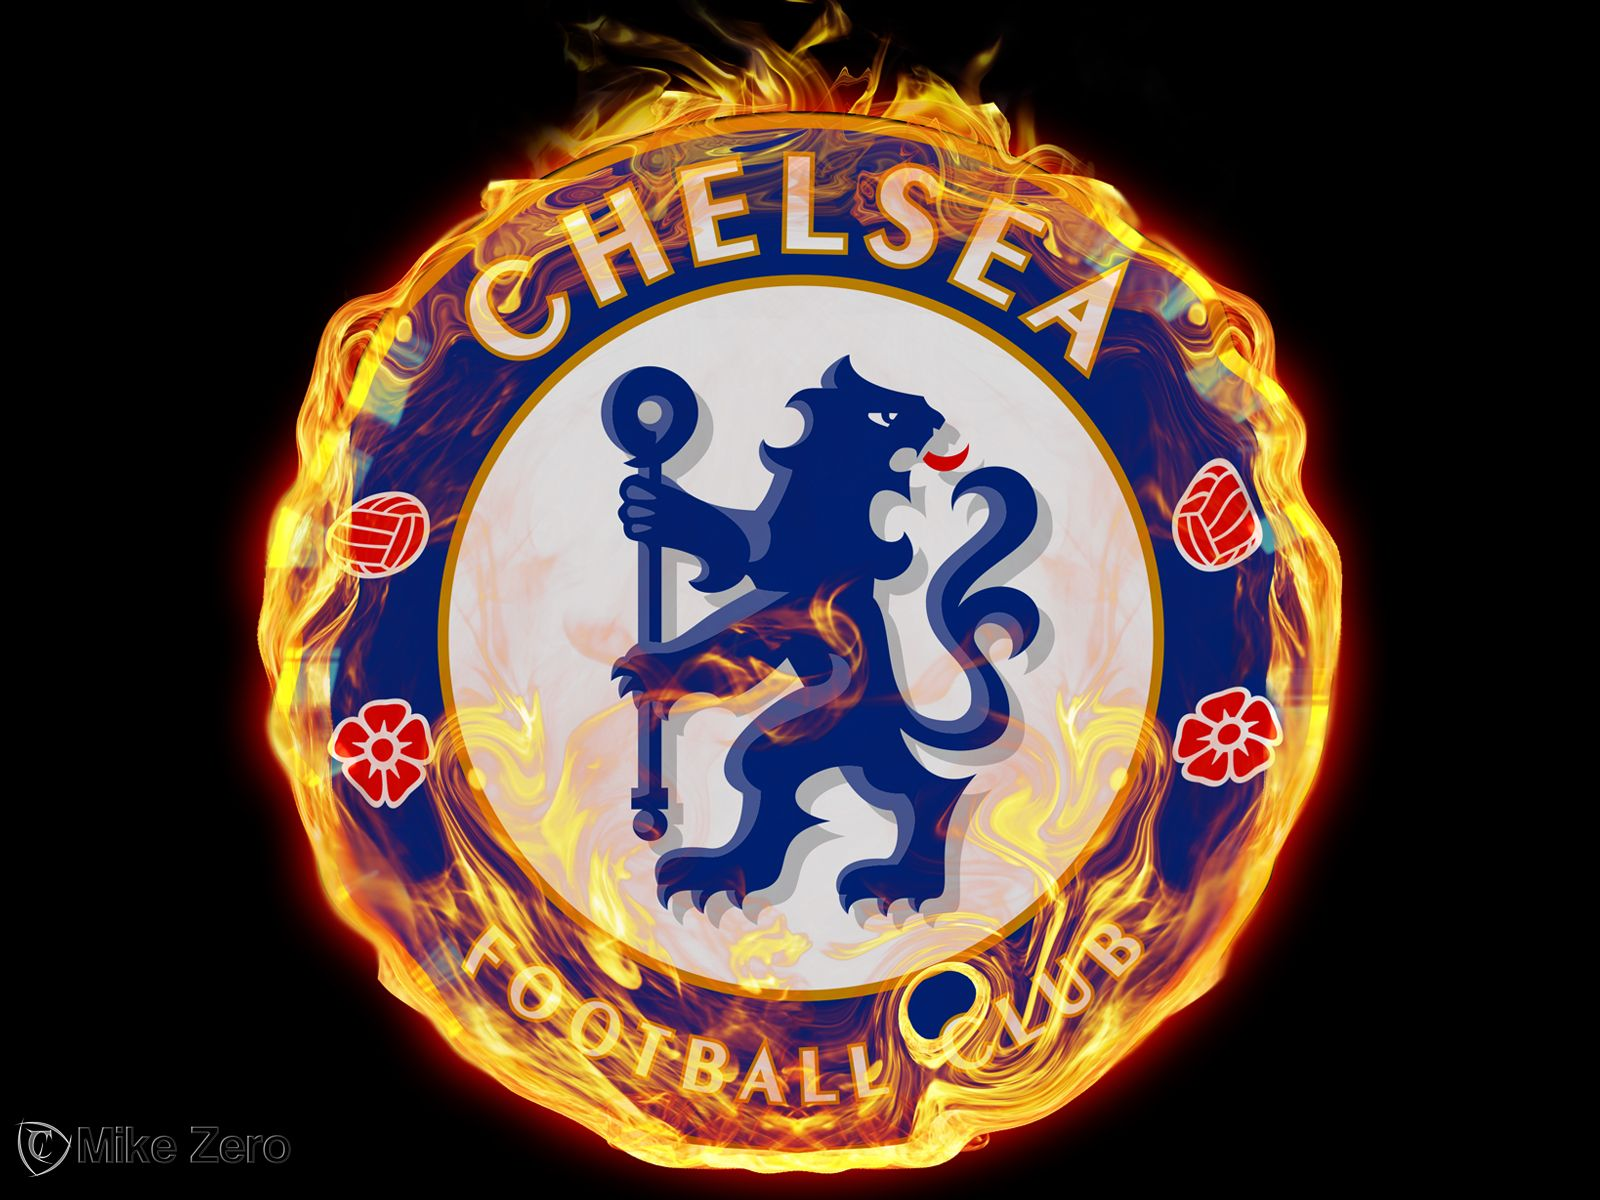 Chelsea fc football pinterest chelsea fc chelsea and chelsea fc wallpaper downloadshd voltagebd Gallery